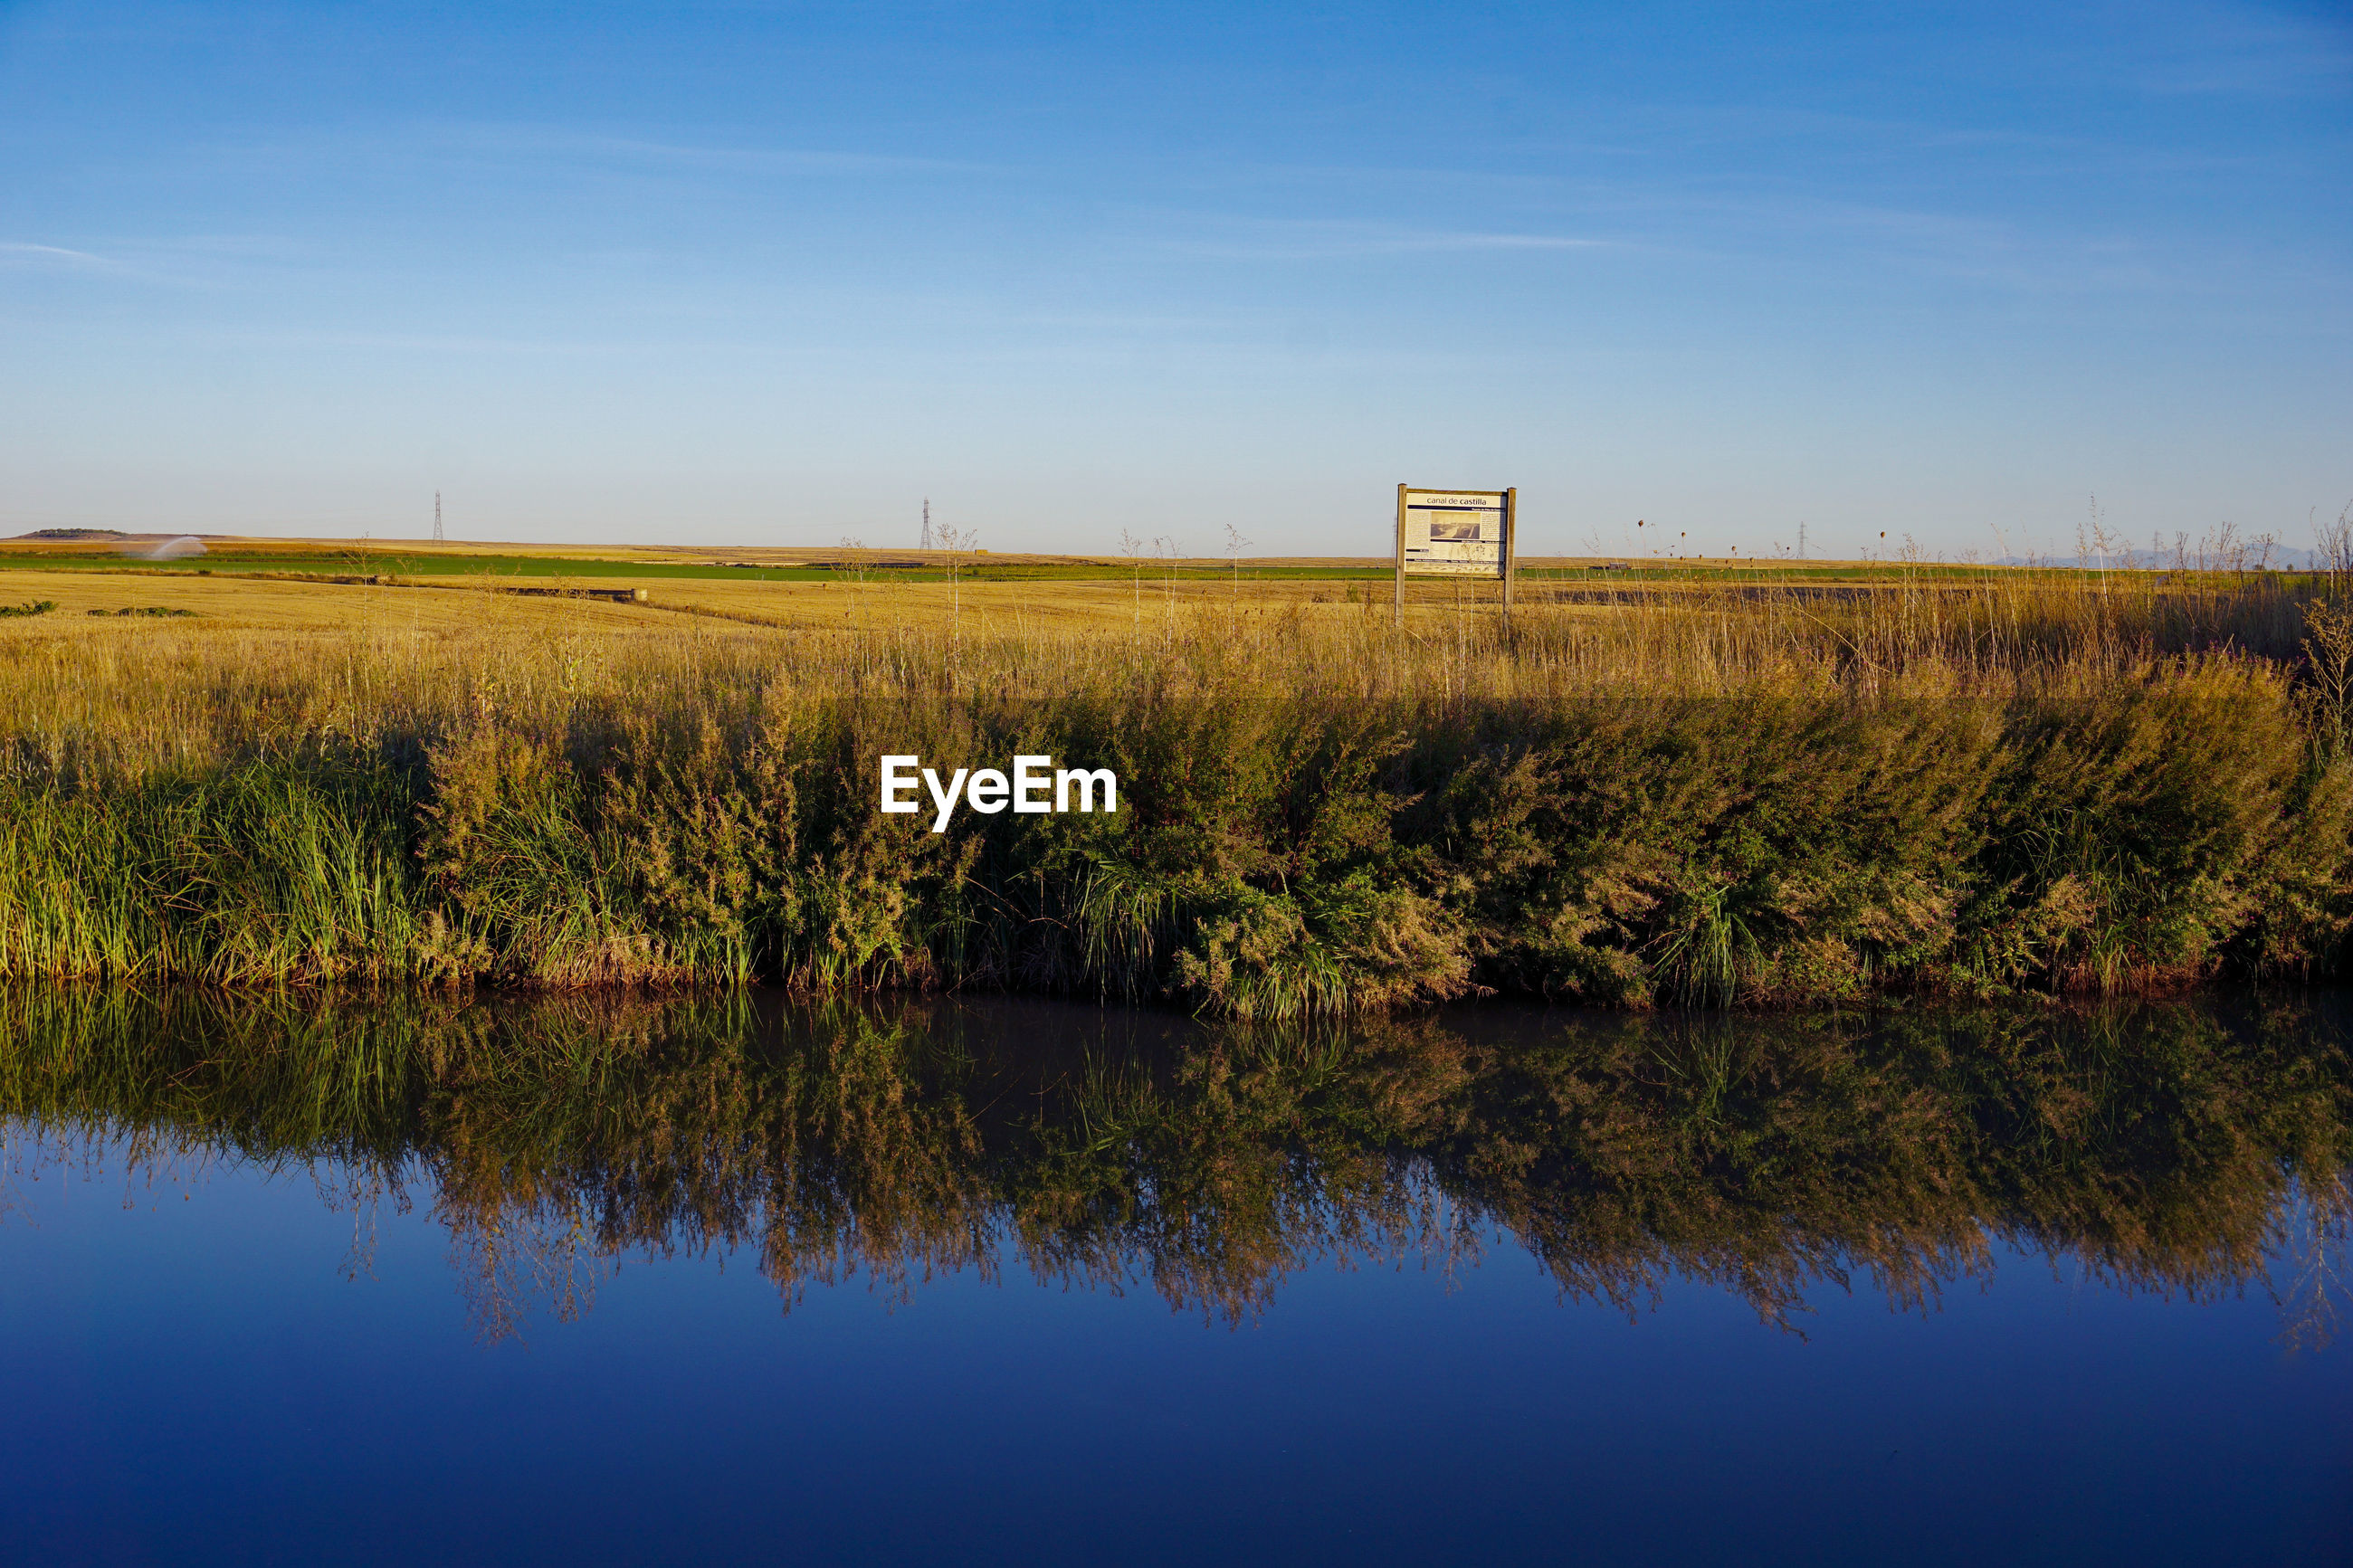 SCENIC VIEW OF GRASSY FIELD BY LAKE AGAINST SKY